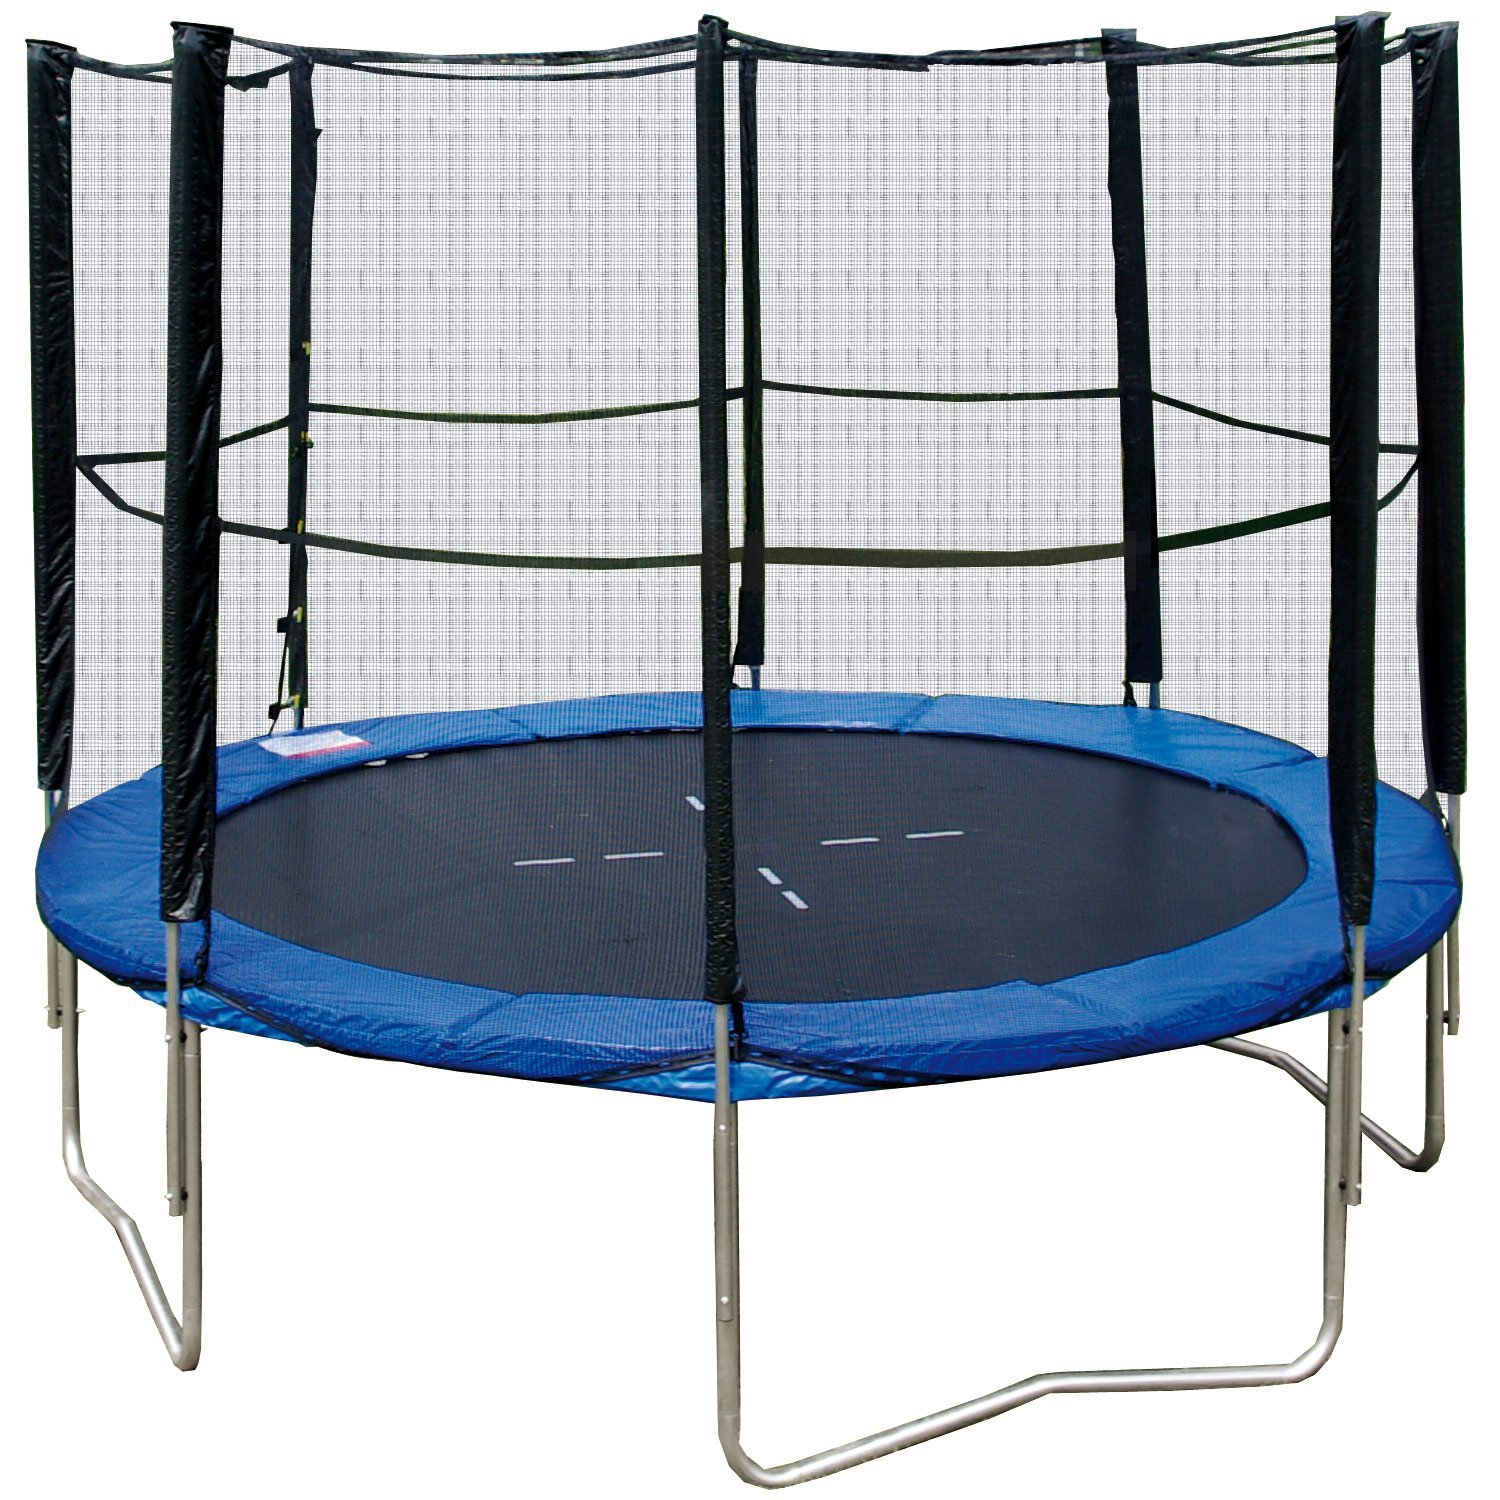 trampolin hudora 300 excellent inspiration trampolin garten test die top hudora rechteckig. Black Bedroom Furniture Sets. Home Design Ideas